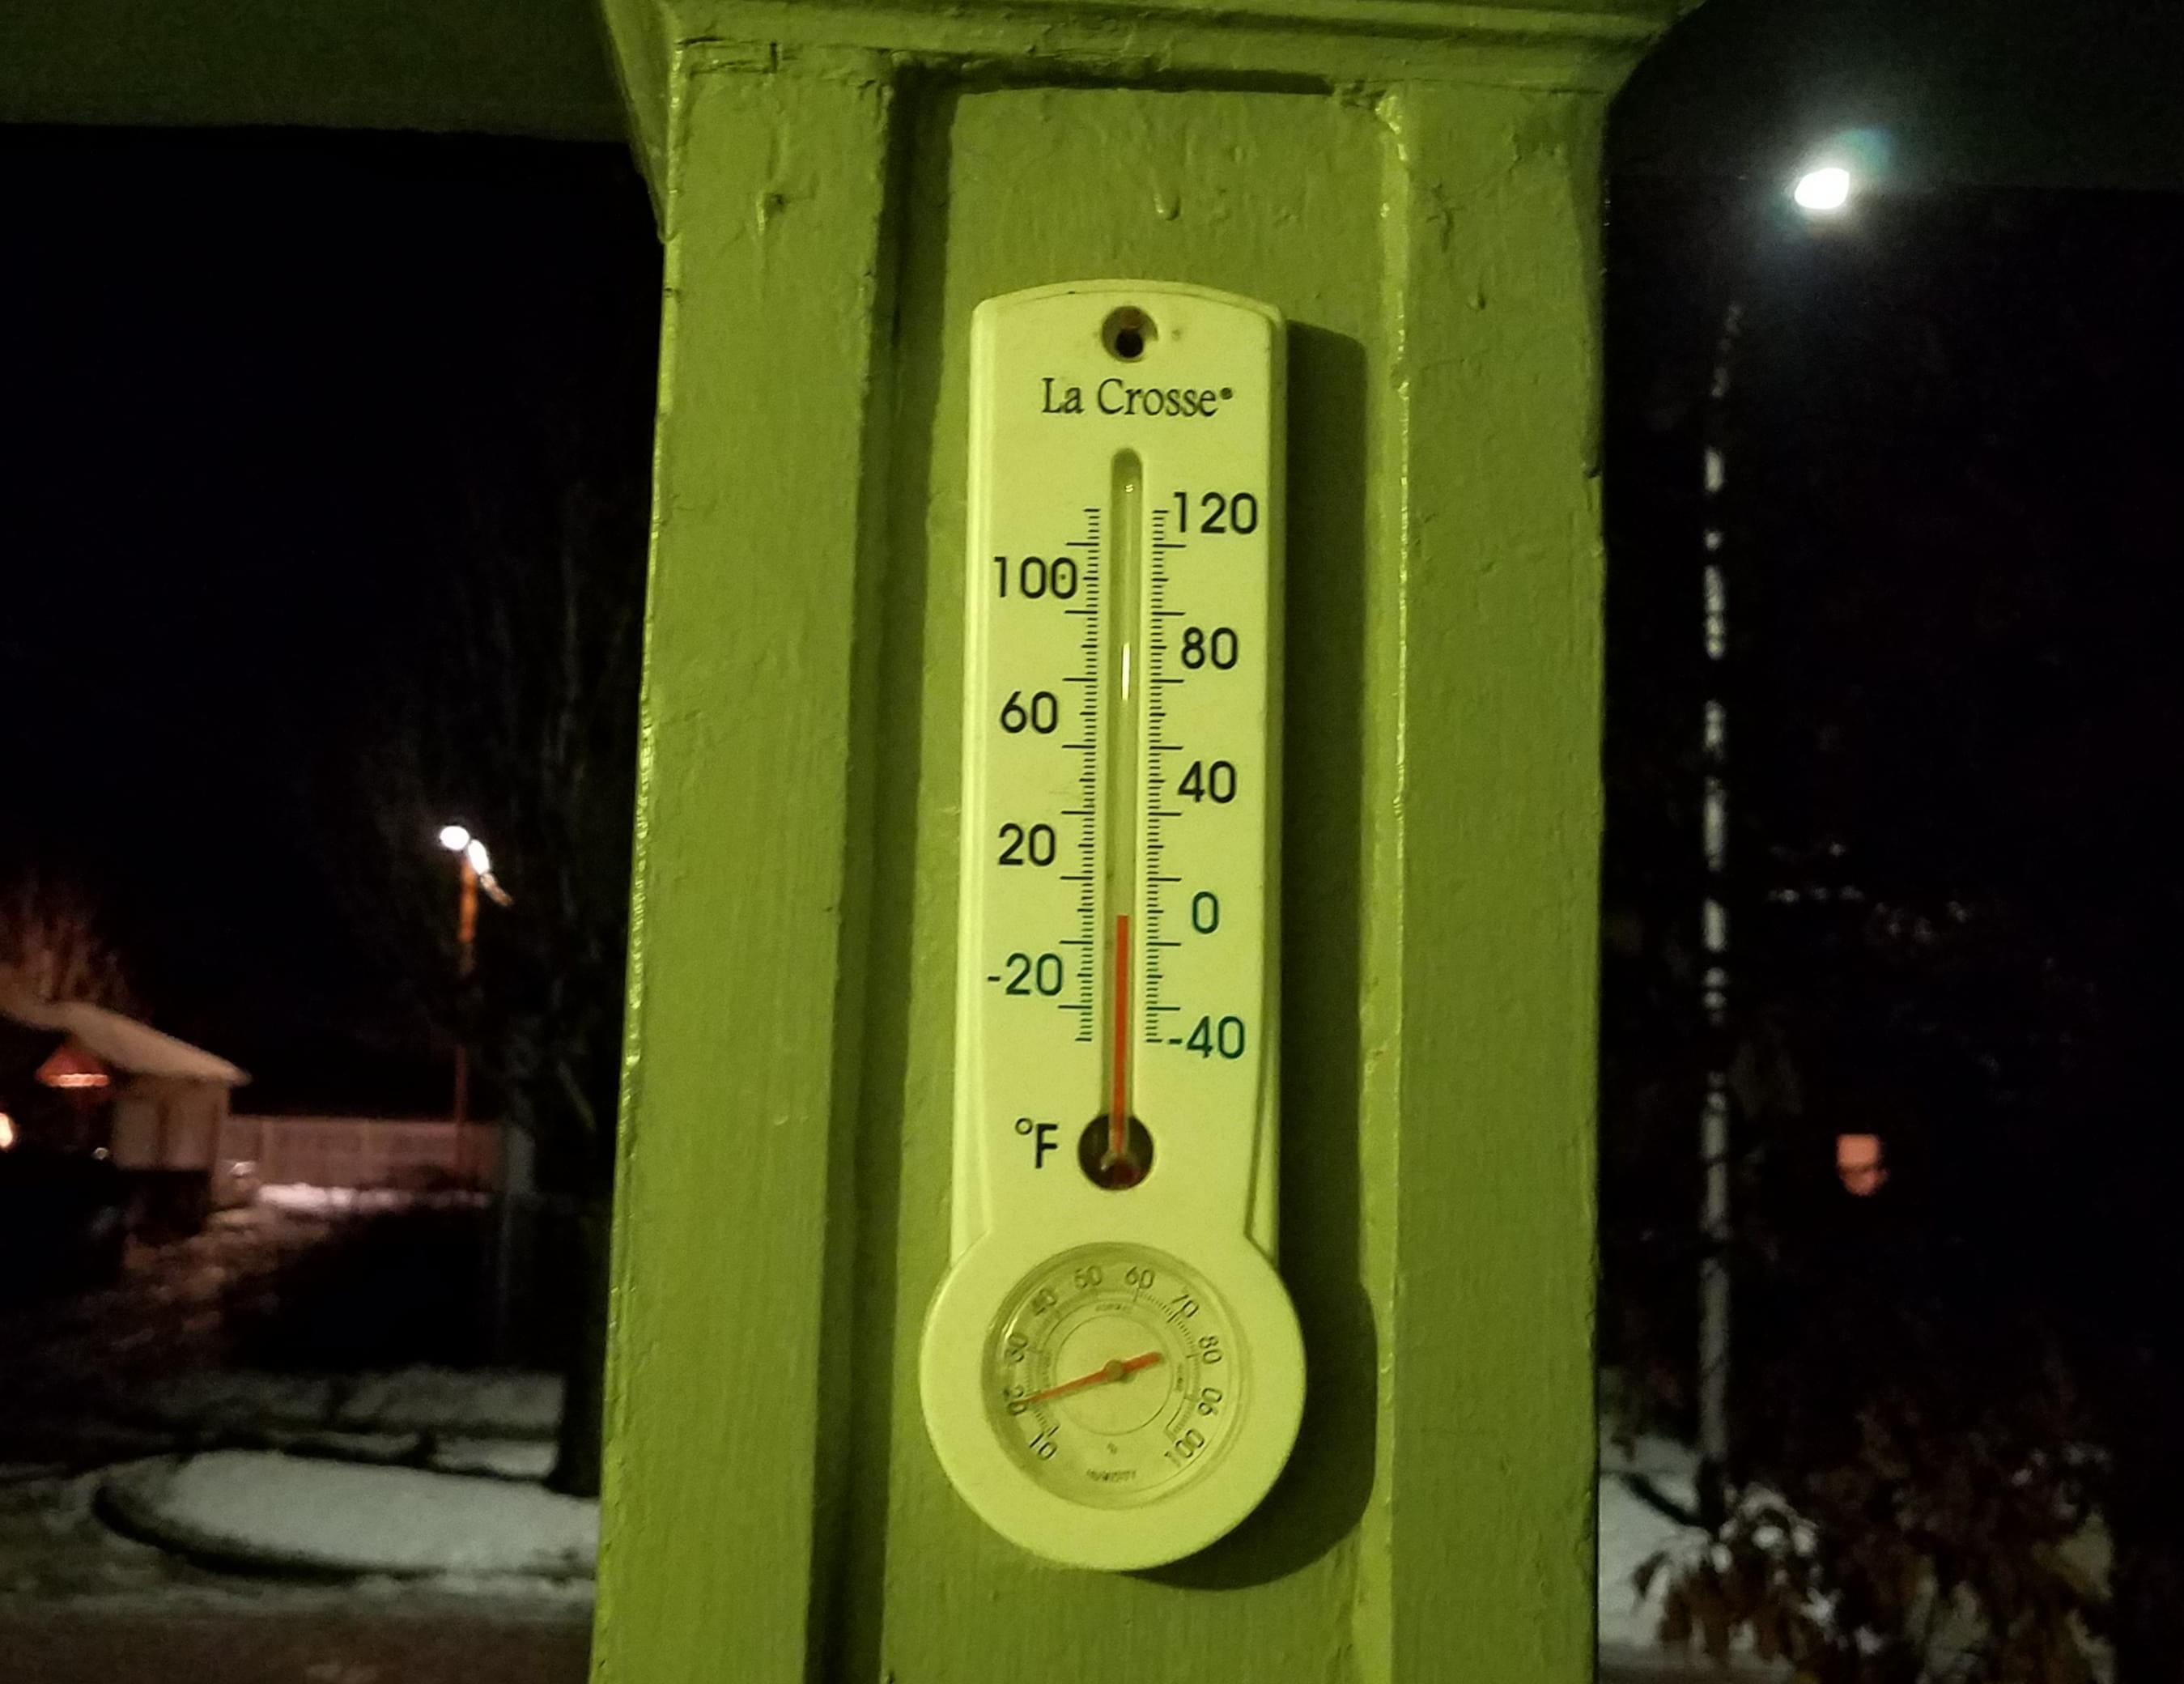 Outdoor thermometer in Champaign.